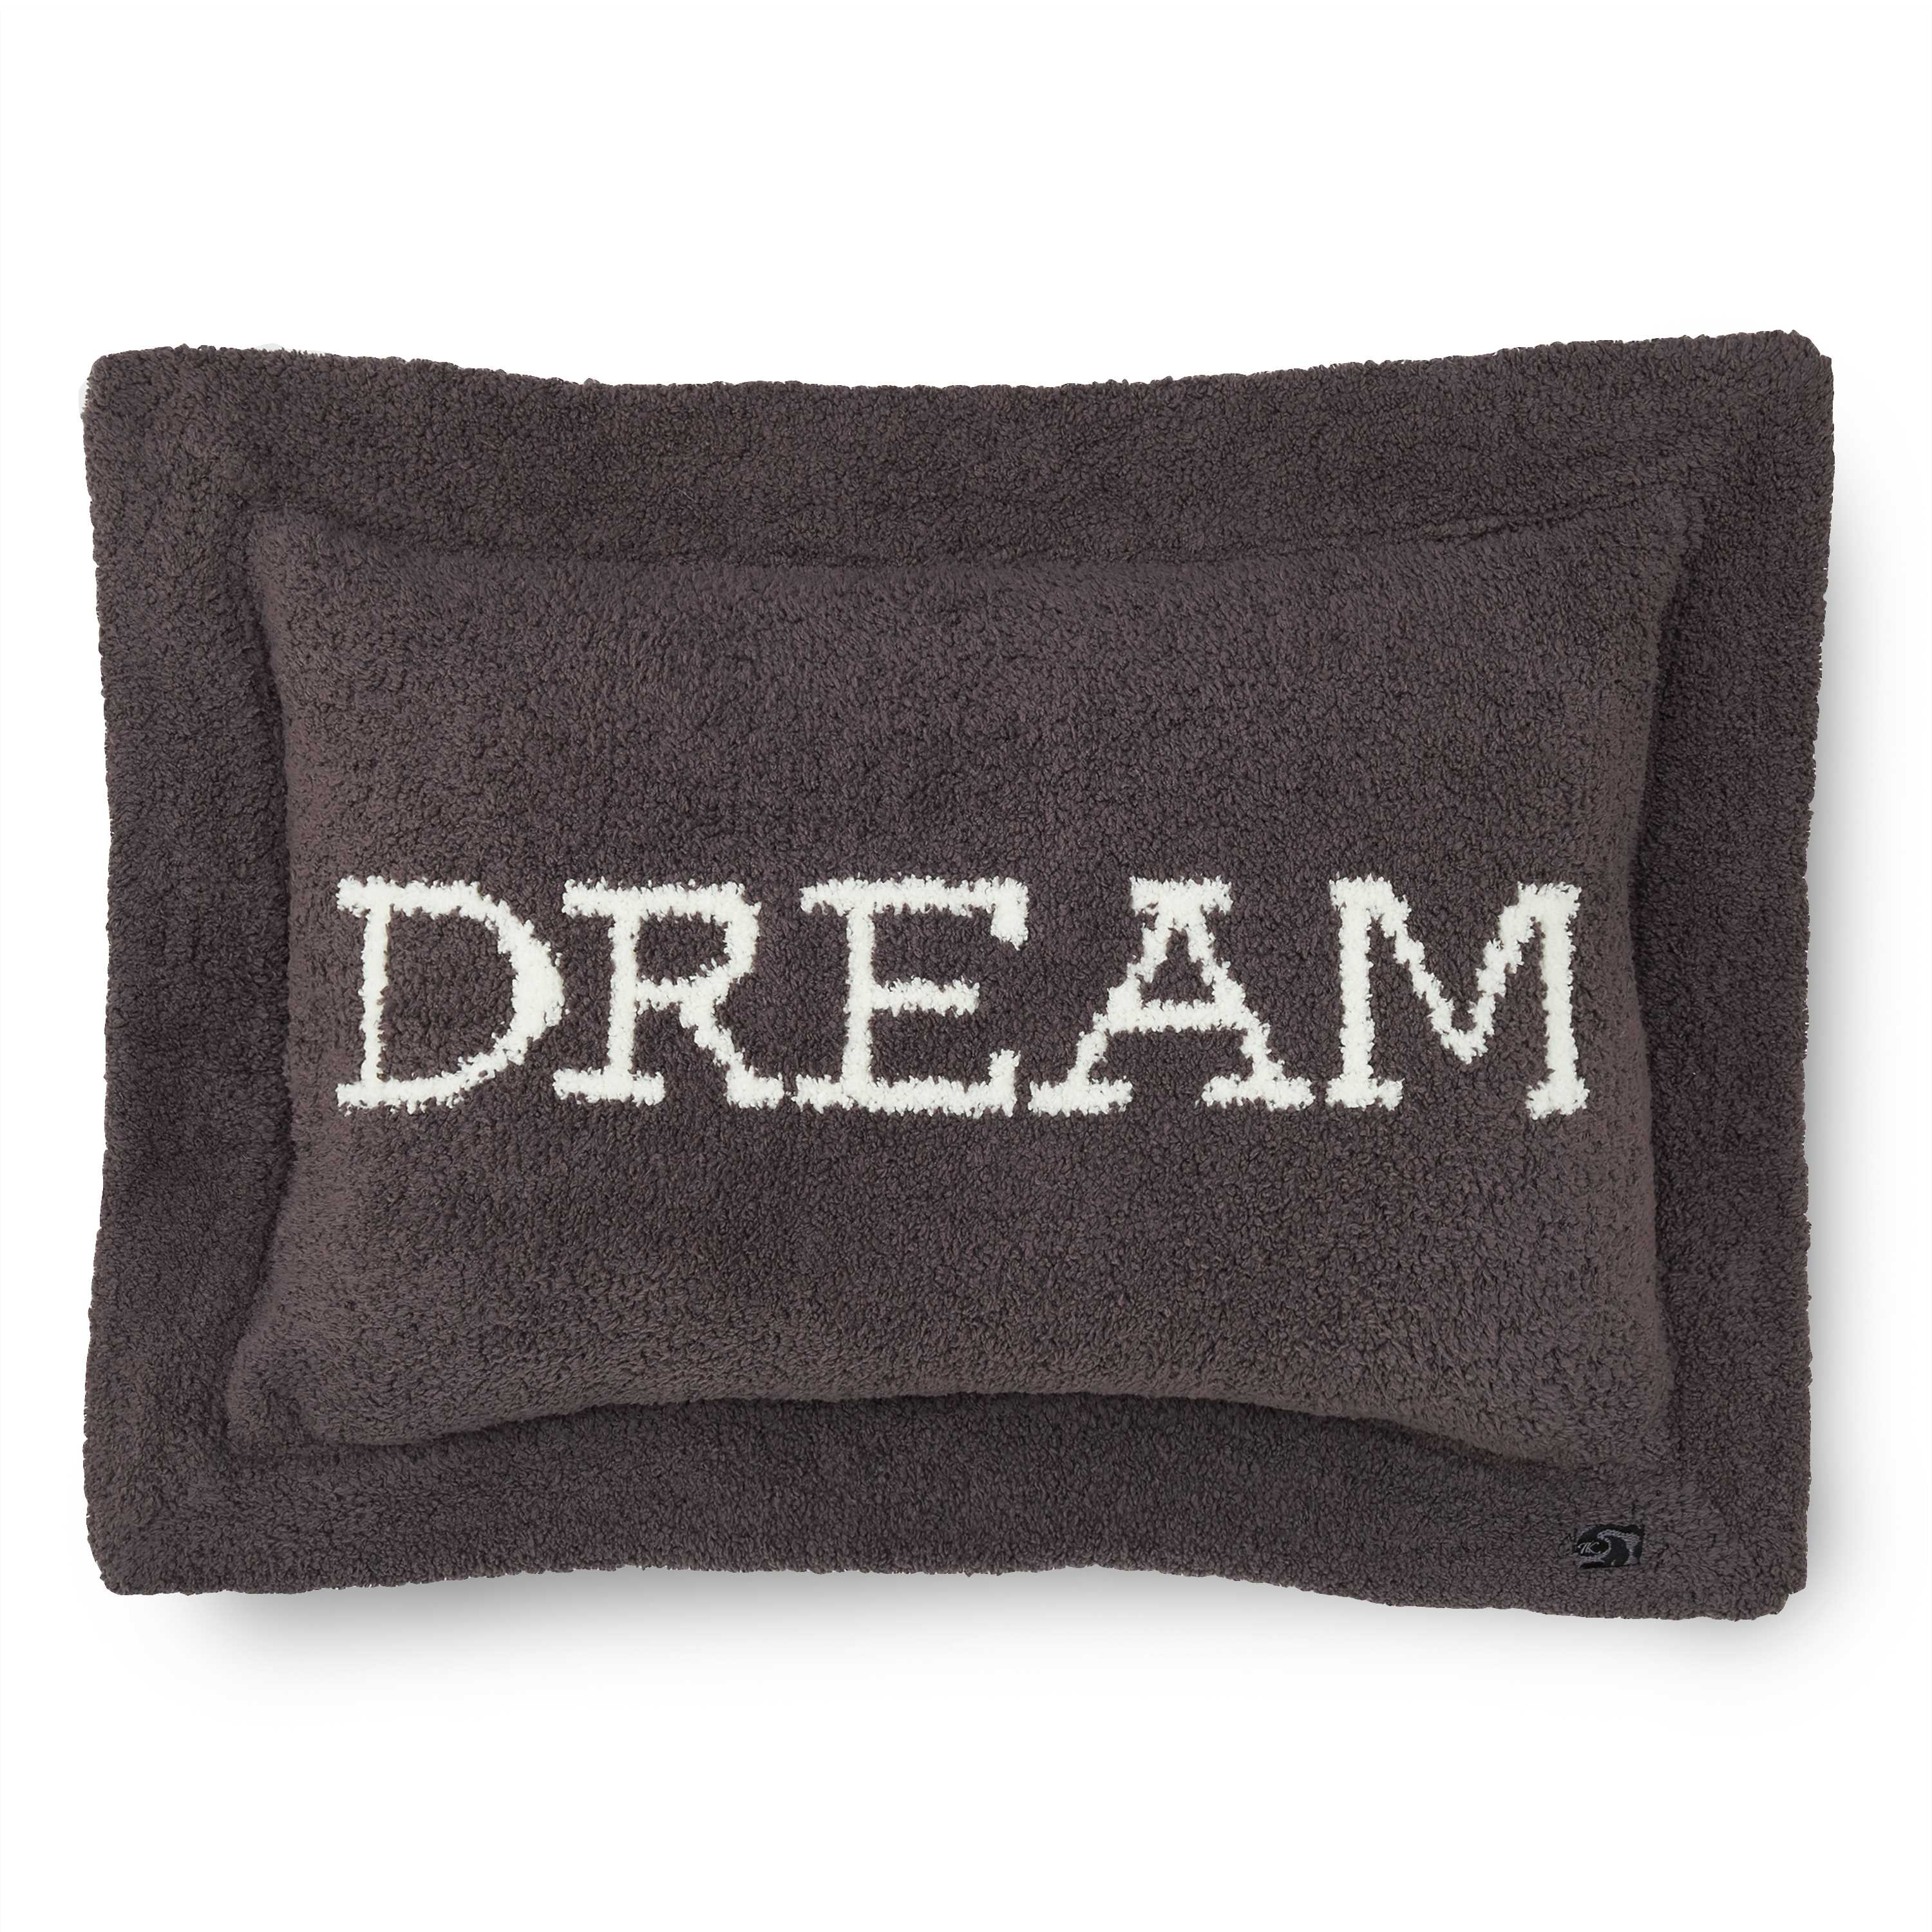 PILLOW CASE / DREAM